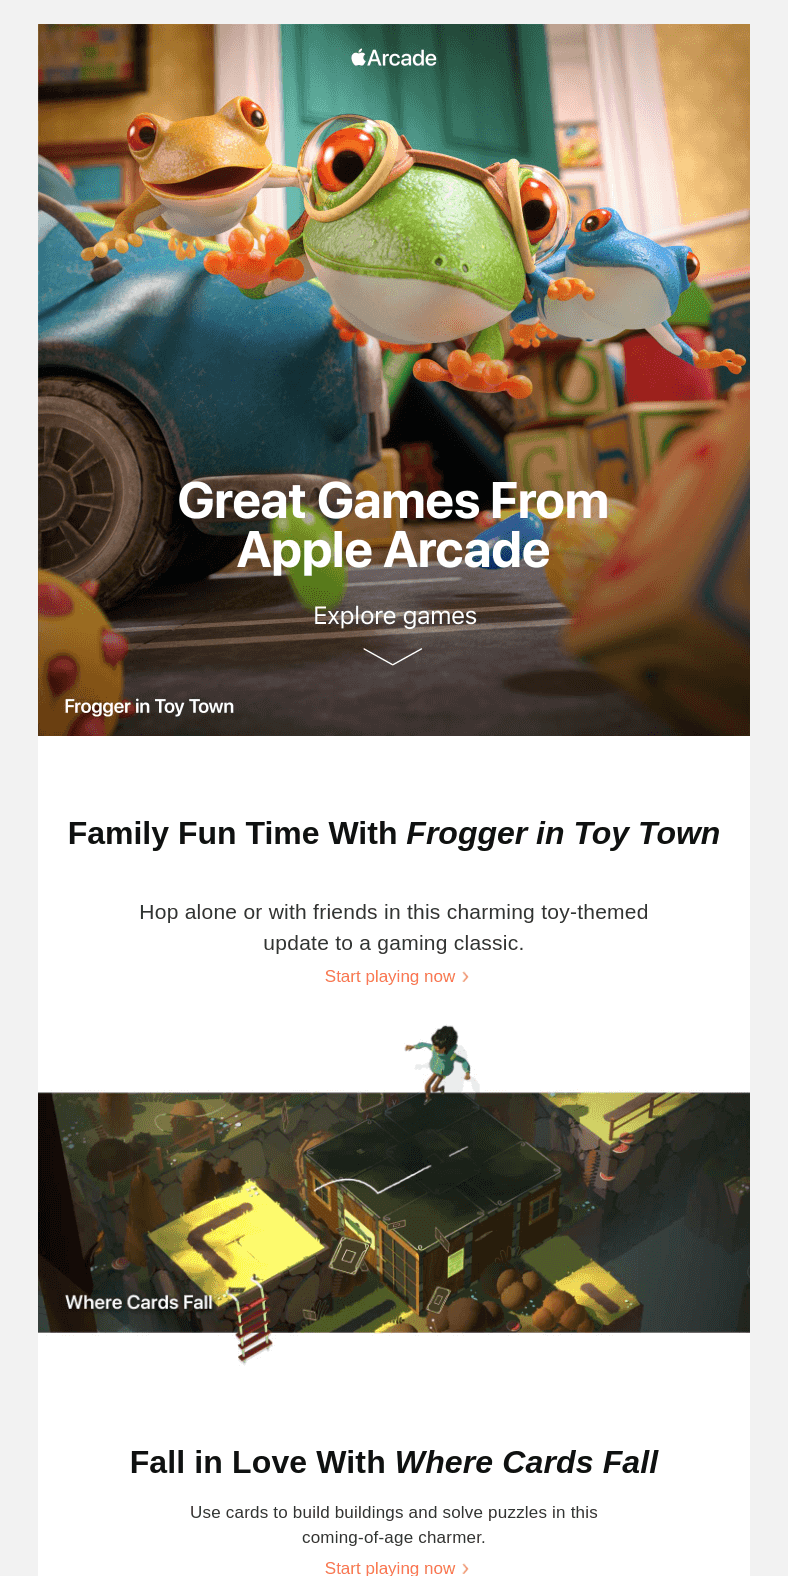 4 fun games you can play now with Apple Arcade